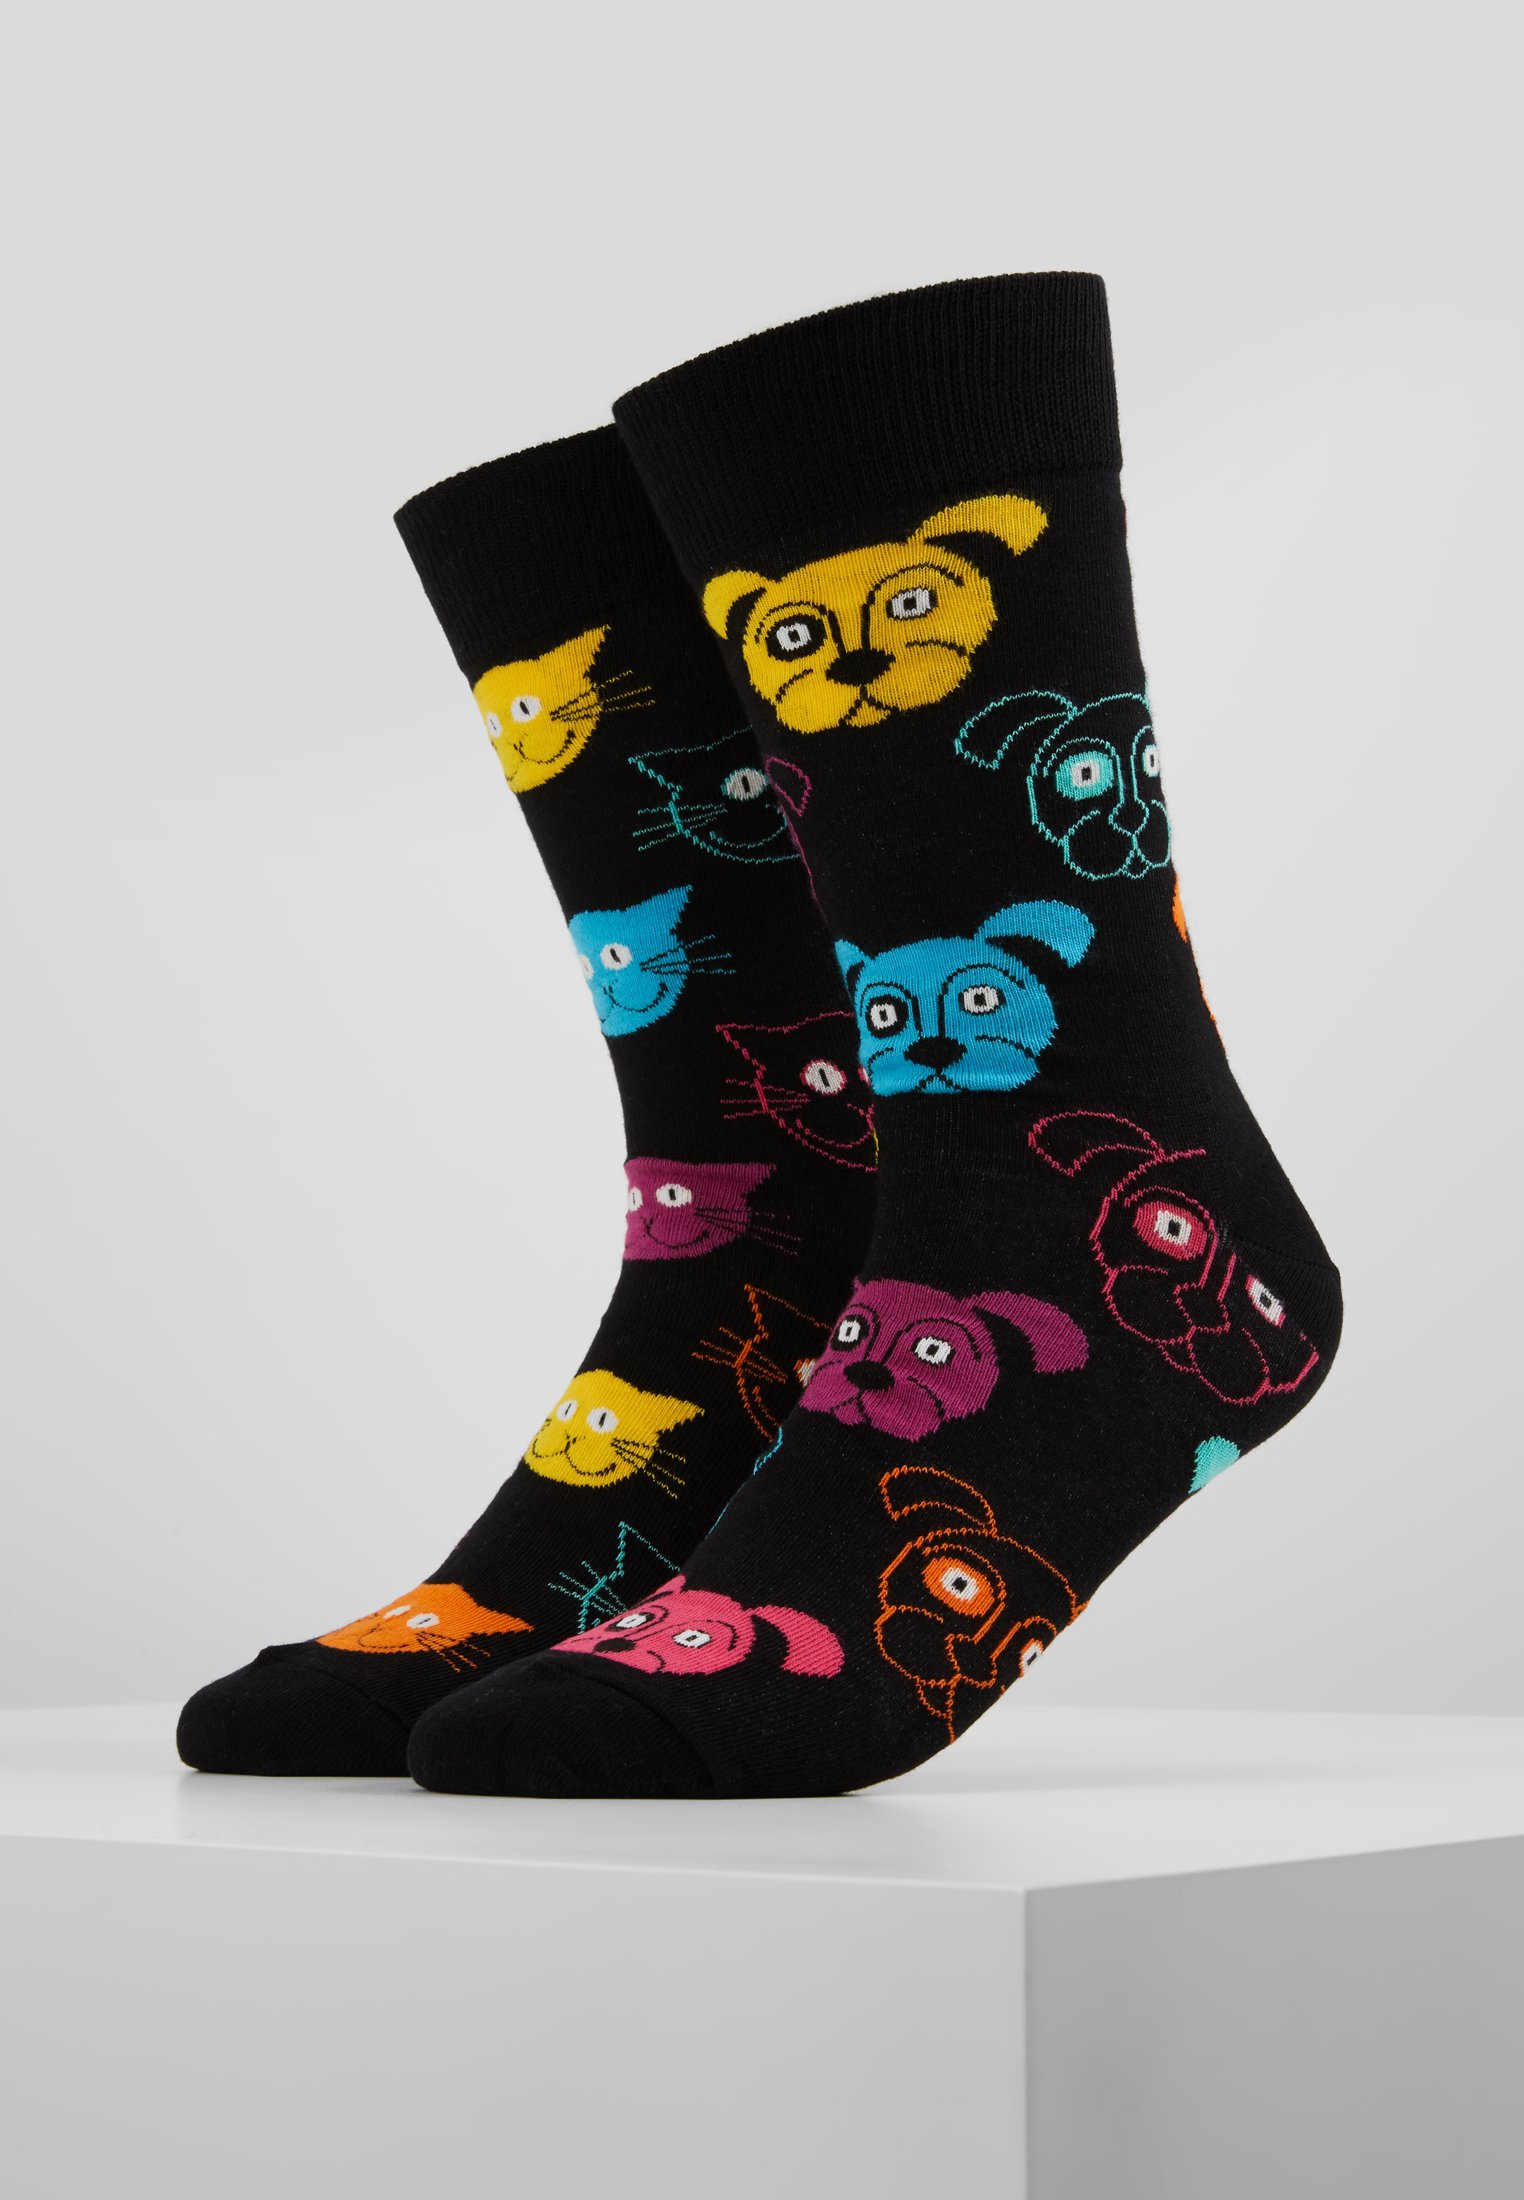 Happy 2 Socks PackChaussettes Cat Dog Gift Box Black SqUzVMpLG